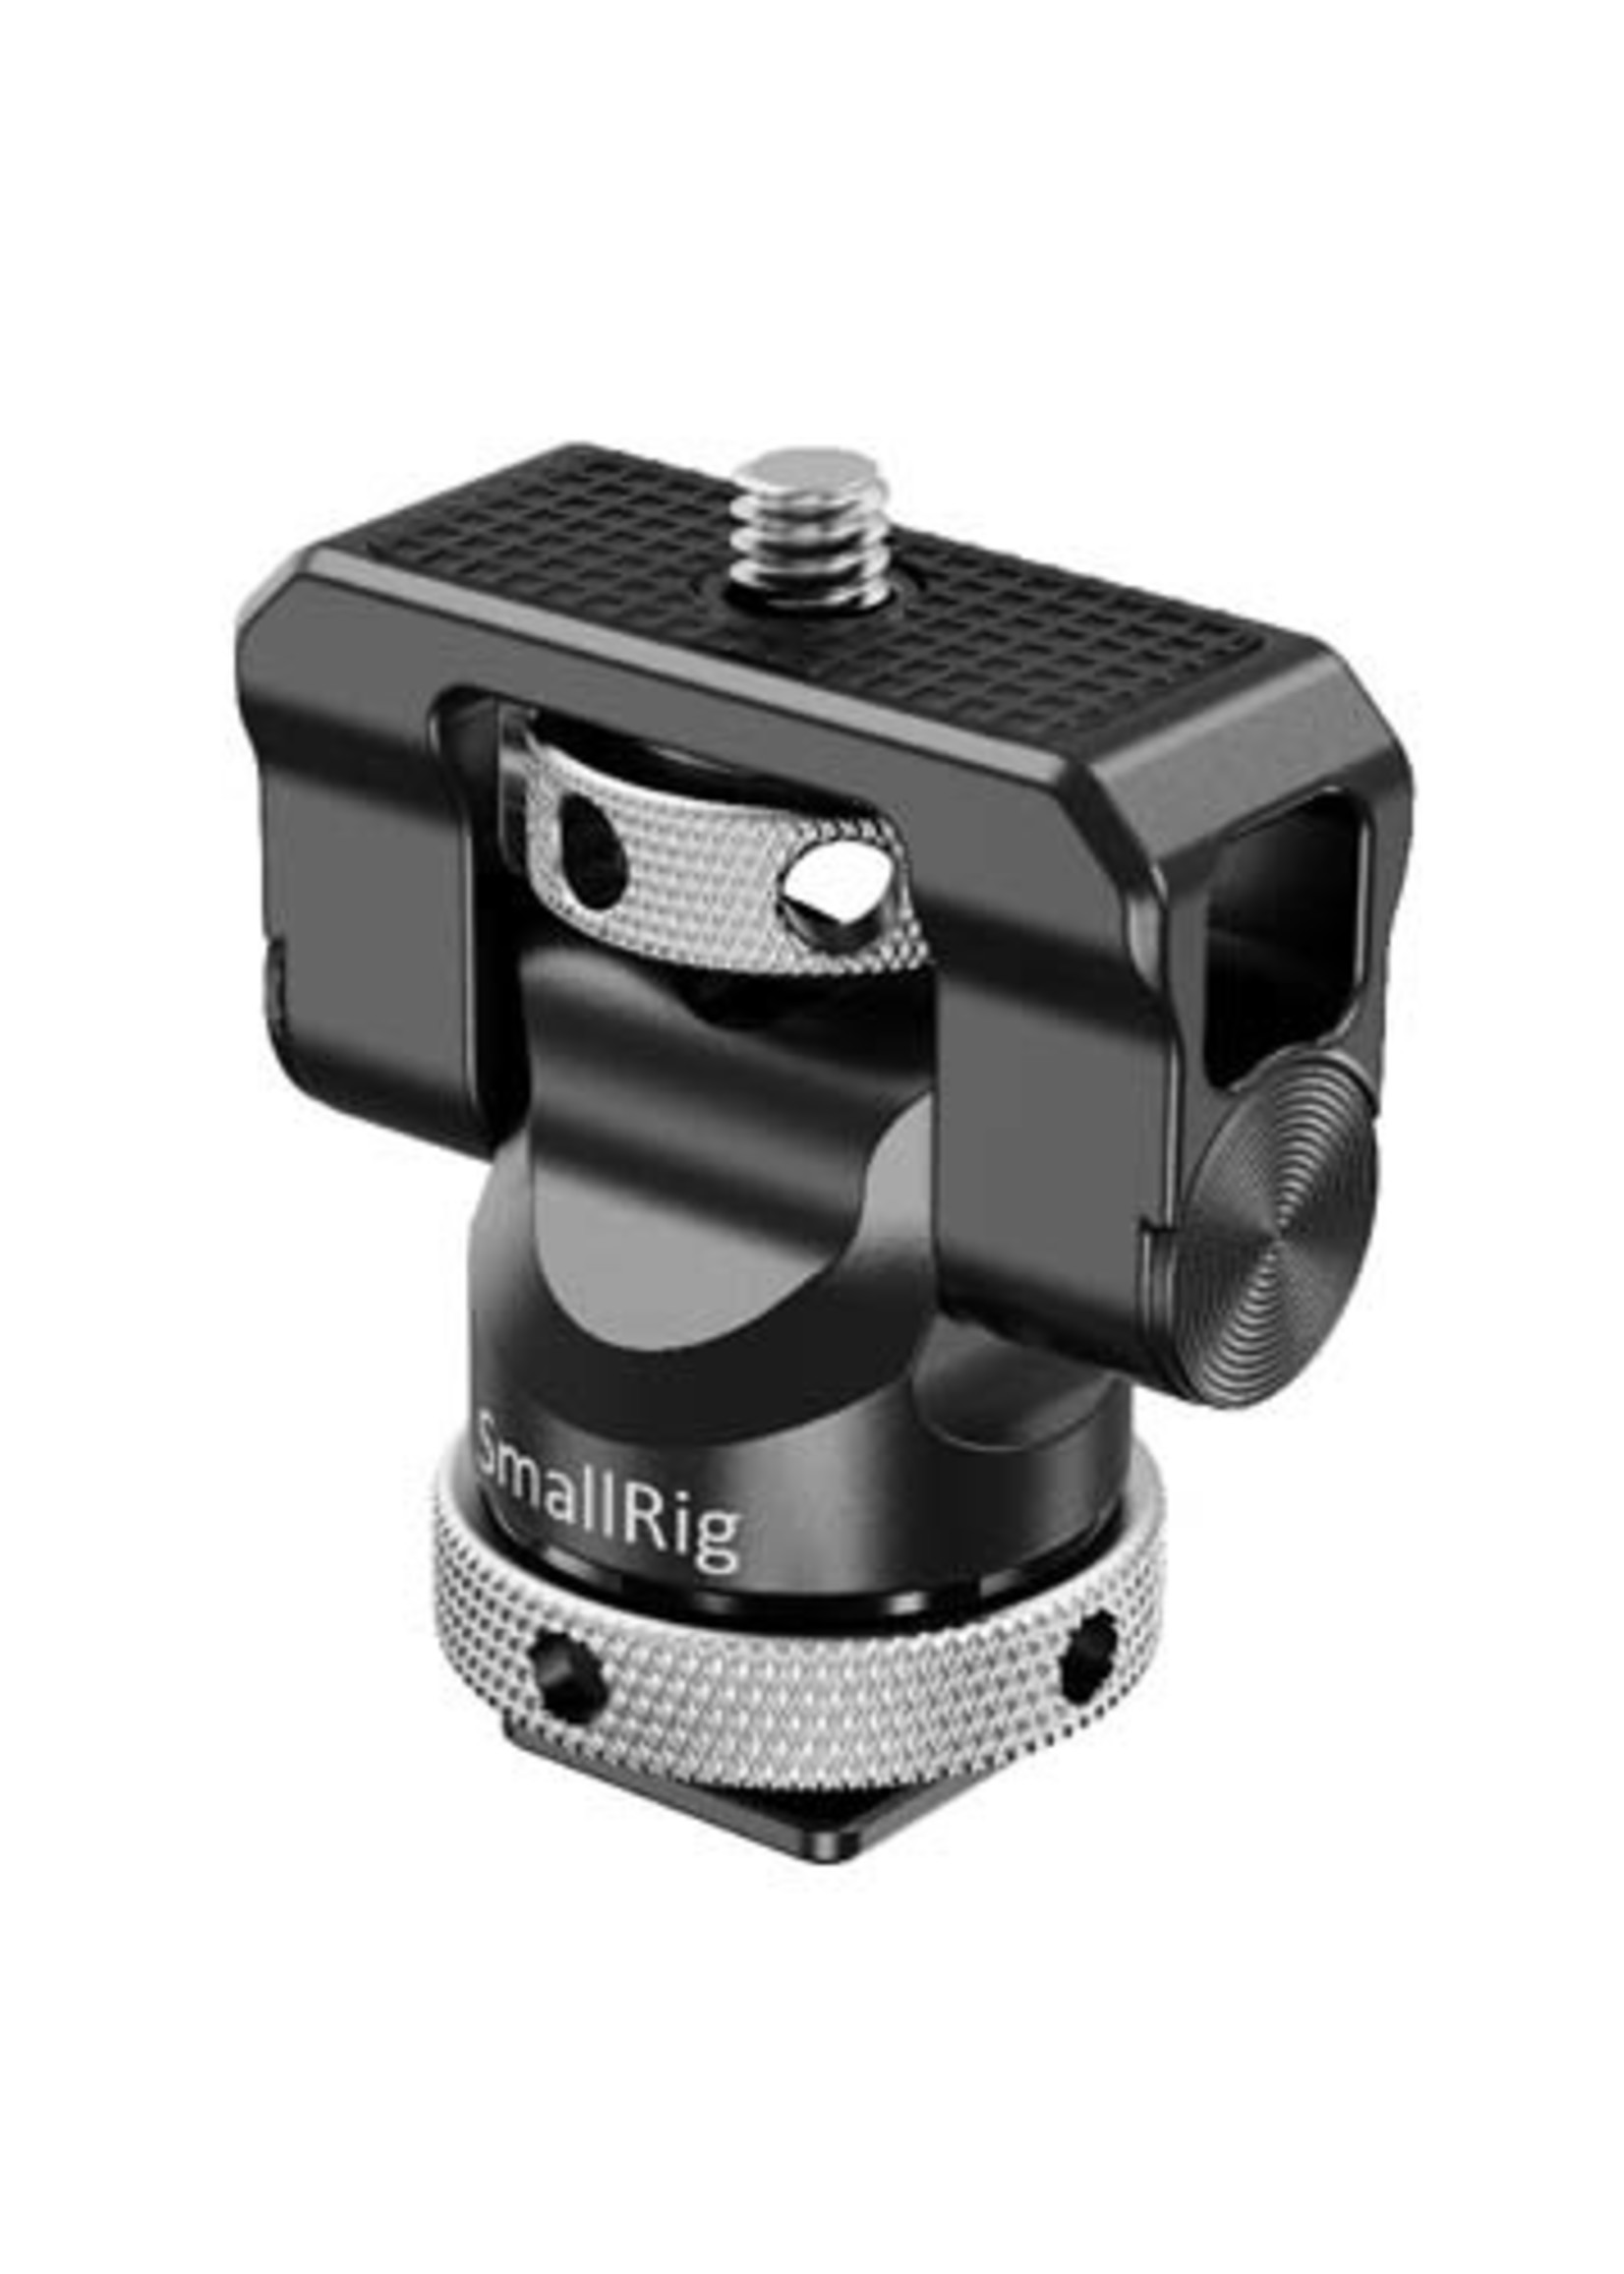 Small Rig SmallRig Swivel and Tilt Monitor Mount with Cold Shoe